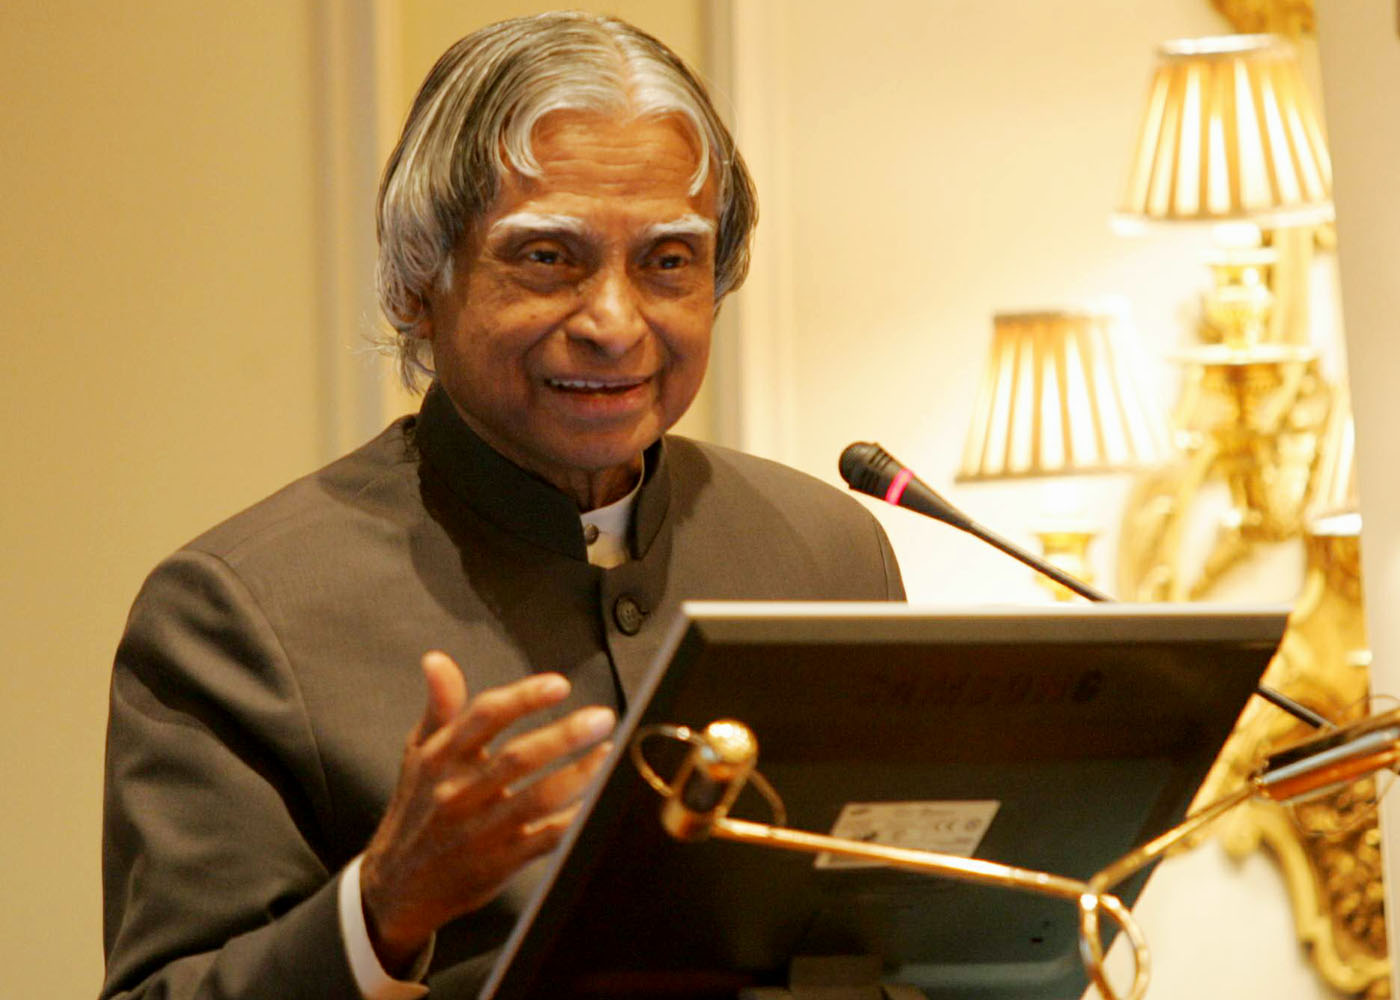 abdul kalam graduated in physics from Abdul kalam's achievements as a scientist: after completing his graduation in 1960, dr apj abdul kalam joined as a scientist in defense research and development.